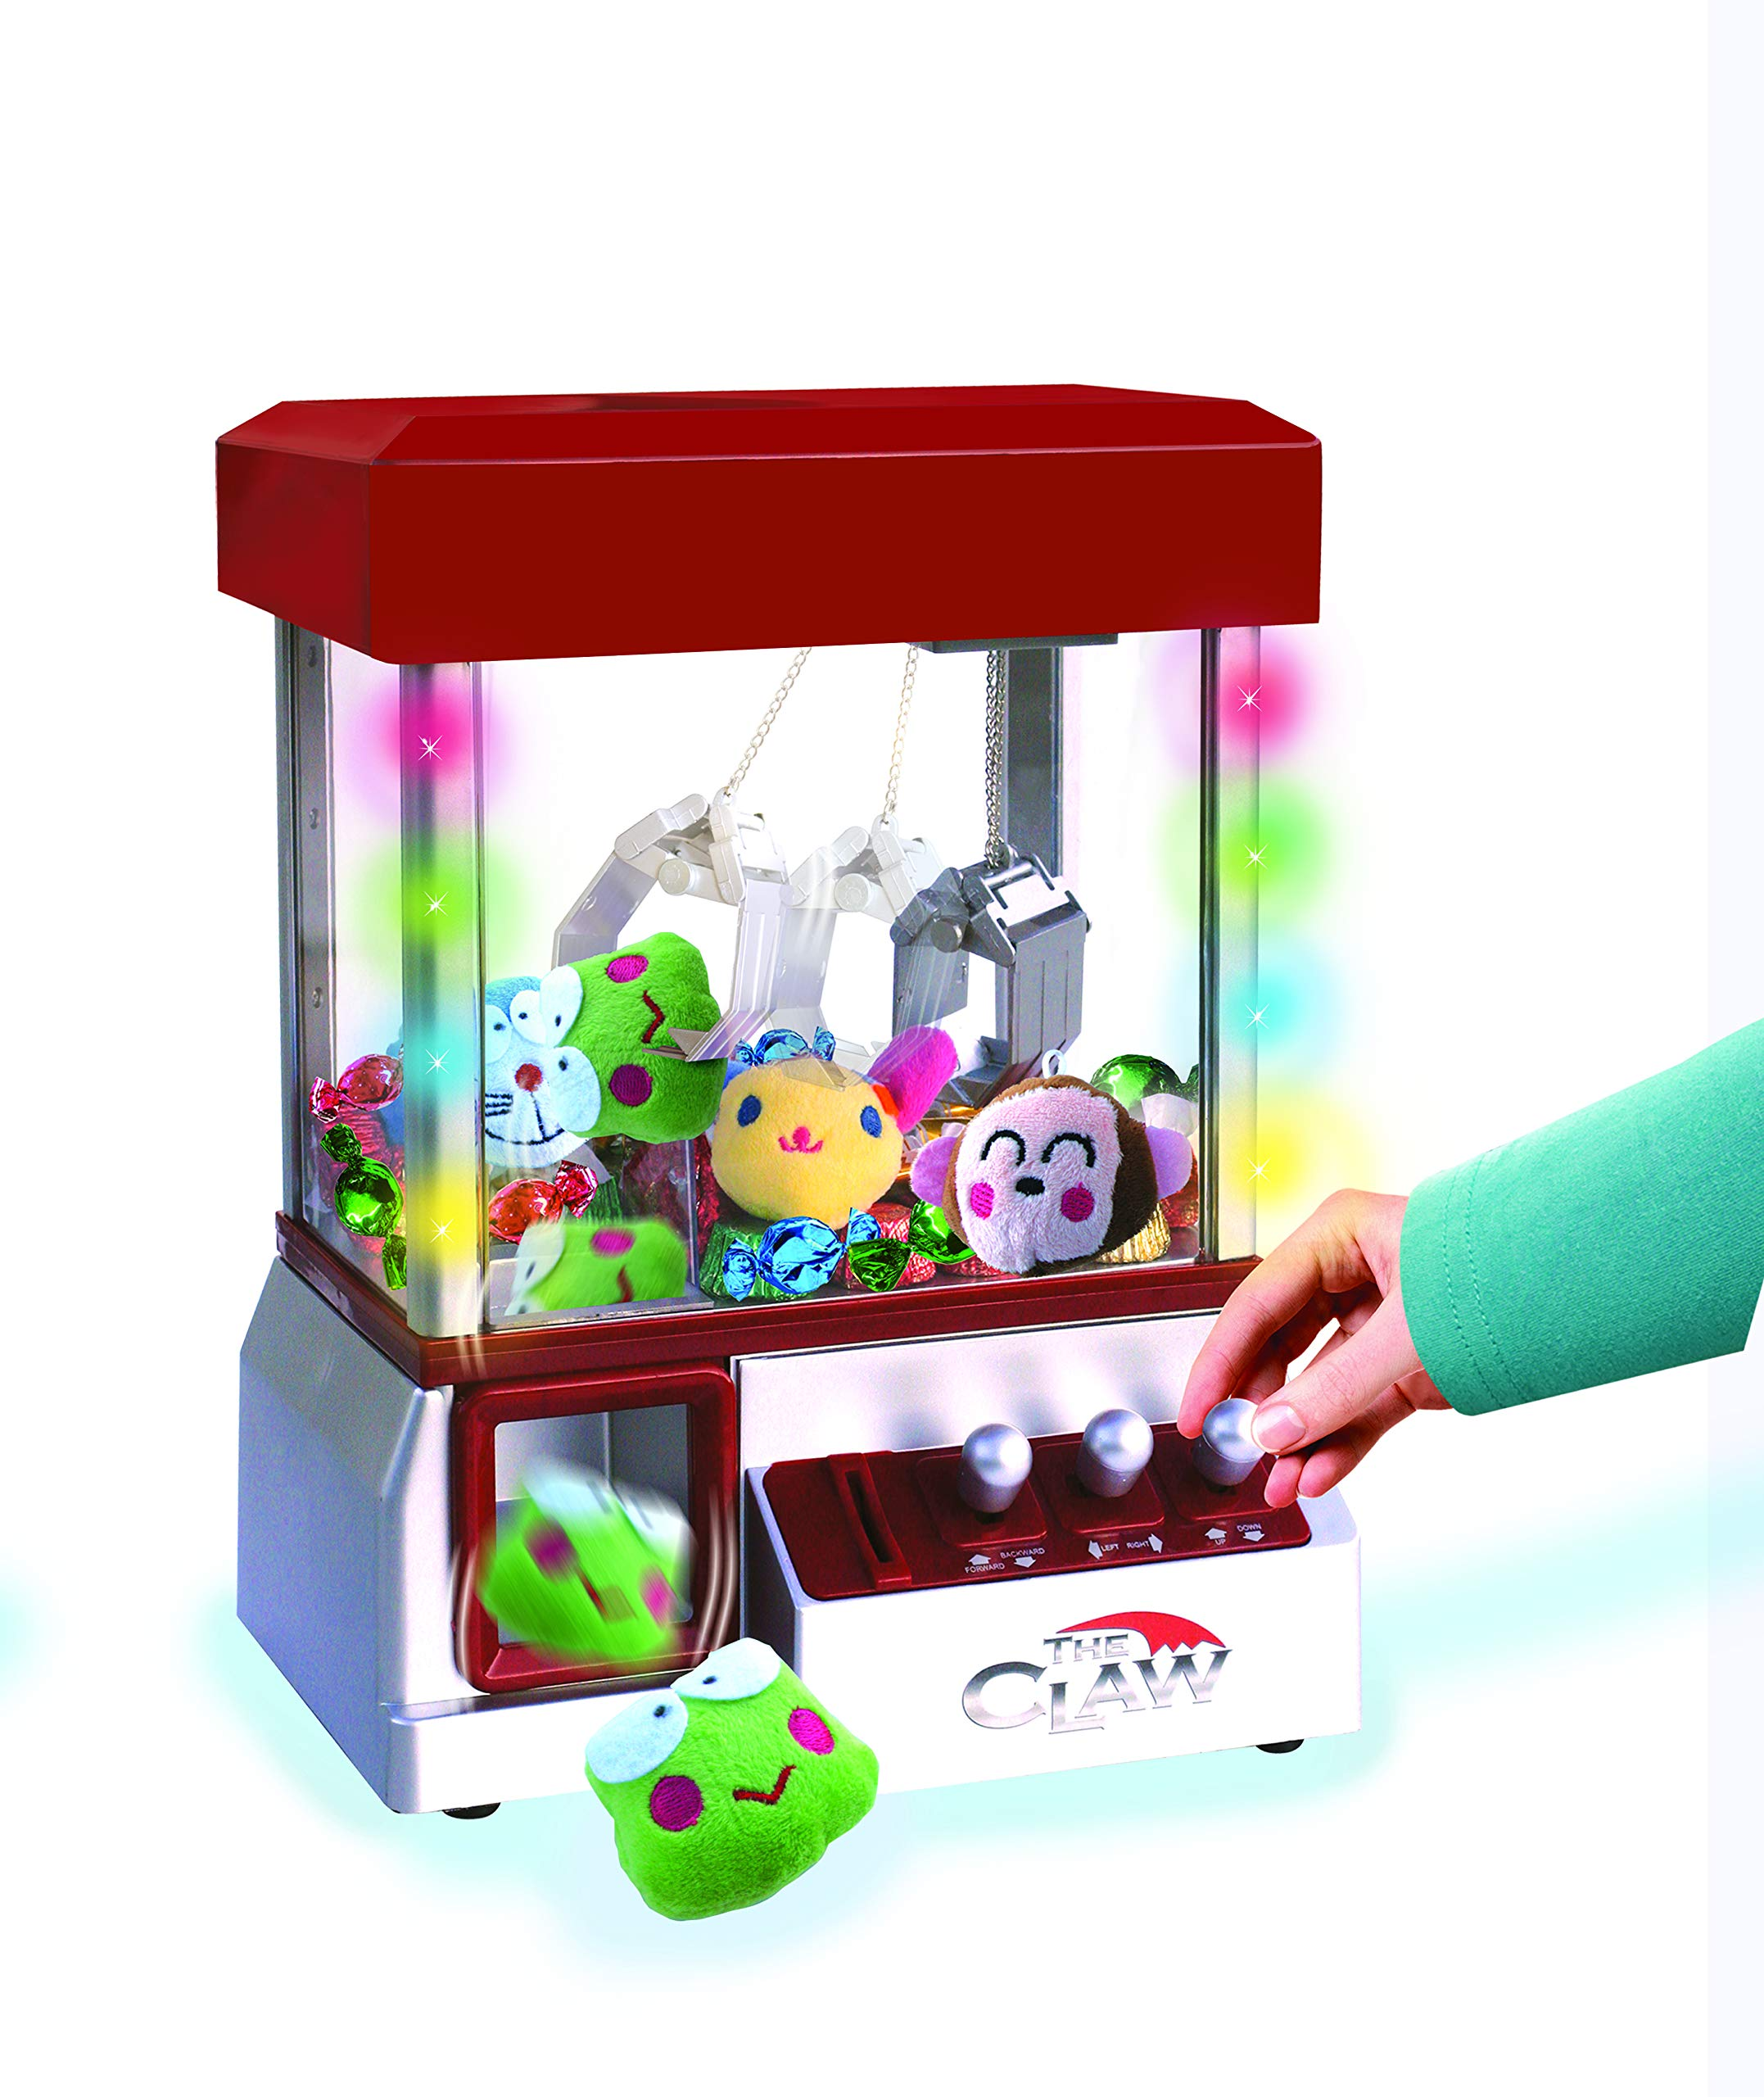 The Claw Toy Grabber Machine with Flashing lights & Sounds and Animal Plush - Features Electronic Claw Toy Grabber Machine, Animation, 4 Animal Plush & Authentic Arcade Sounds for Exciting Play by Define Essentials